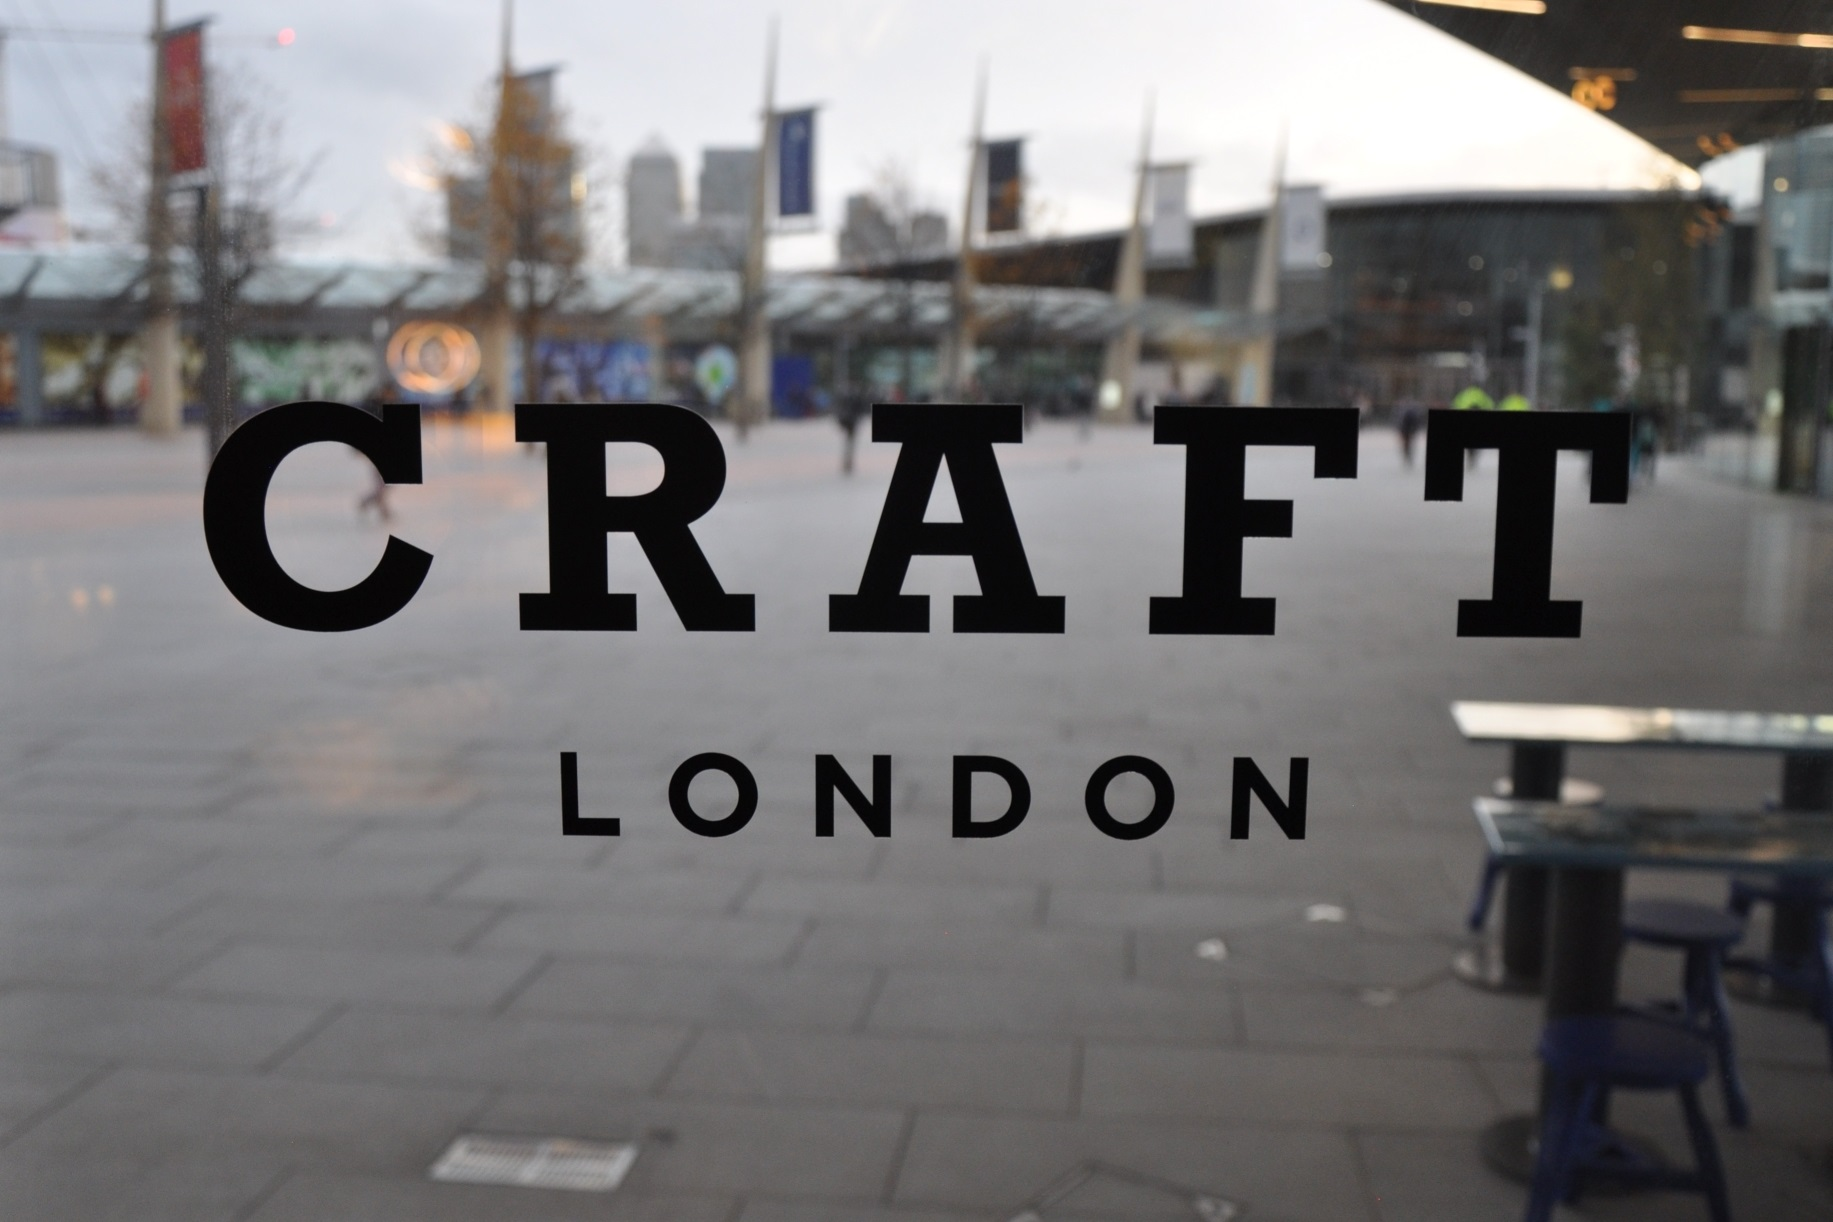 """The word """"CRAFT"""" written above the word """"LONDON"""" in the window of CRAFT London, the O2 Arena in the background."""